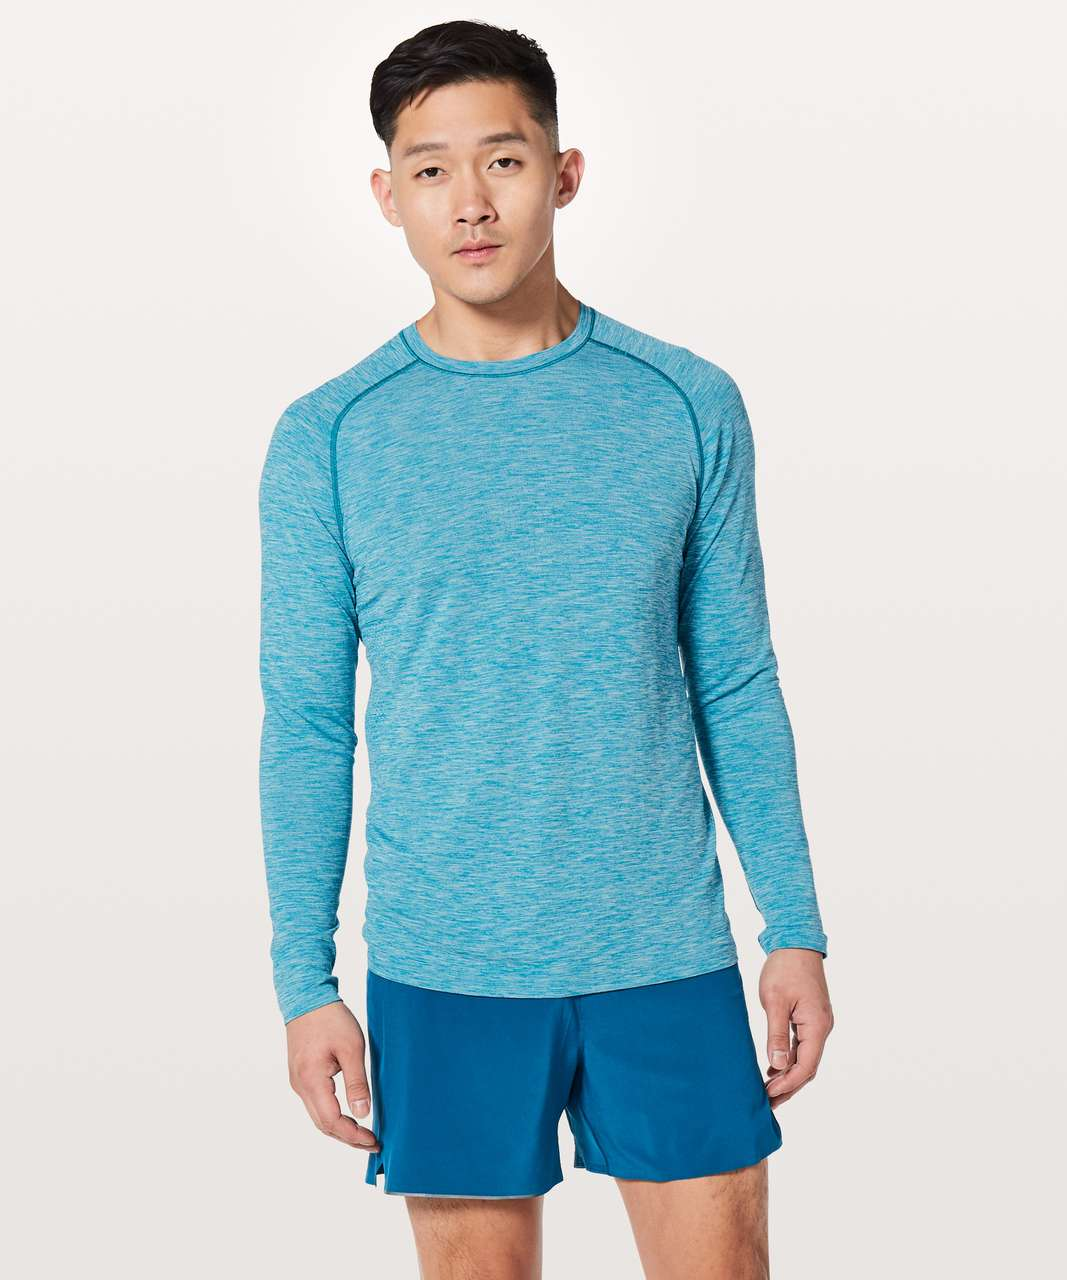 Lululemon Metal Vent Tech Surge Long Sleeve - Cyprus / White